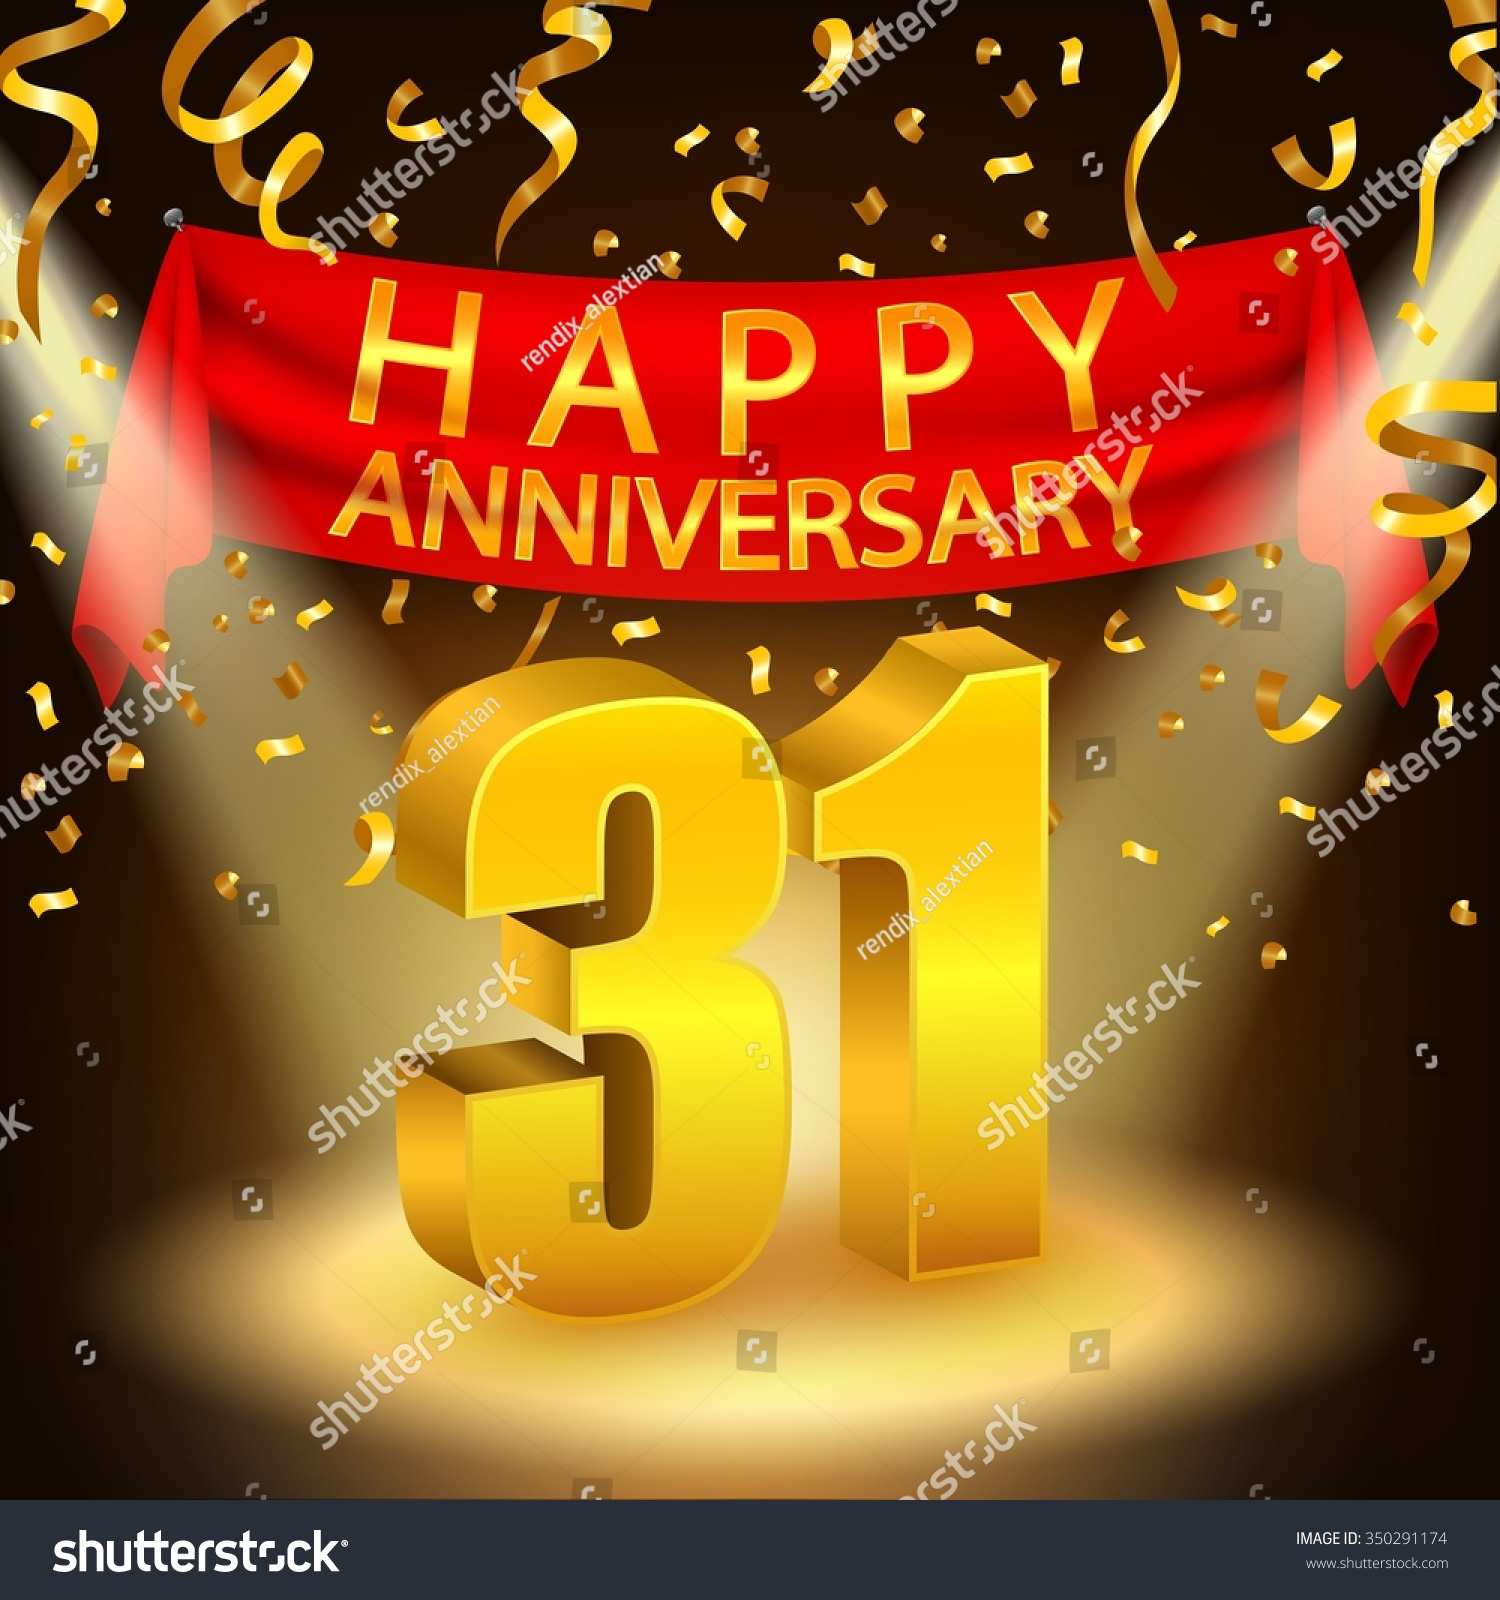 Happy 31st Anniversary Celebration Golden Confetti Stock